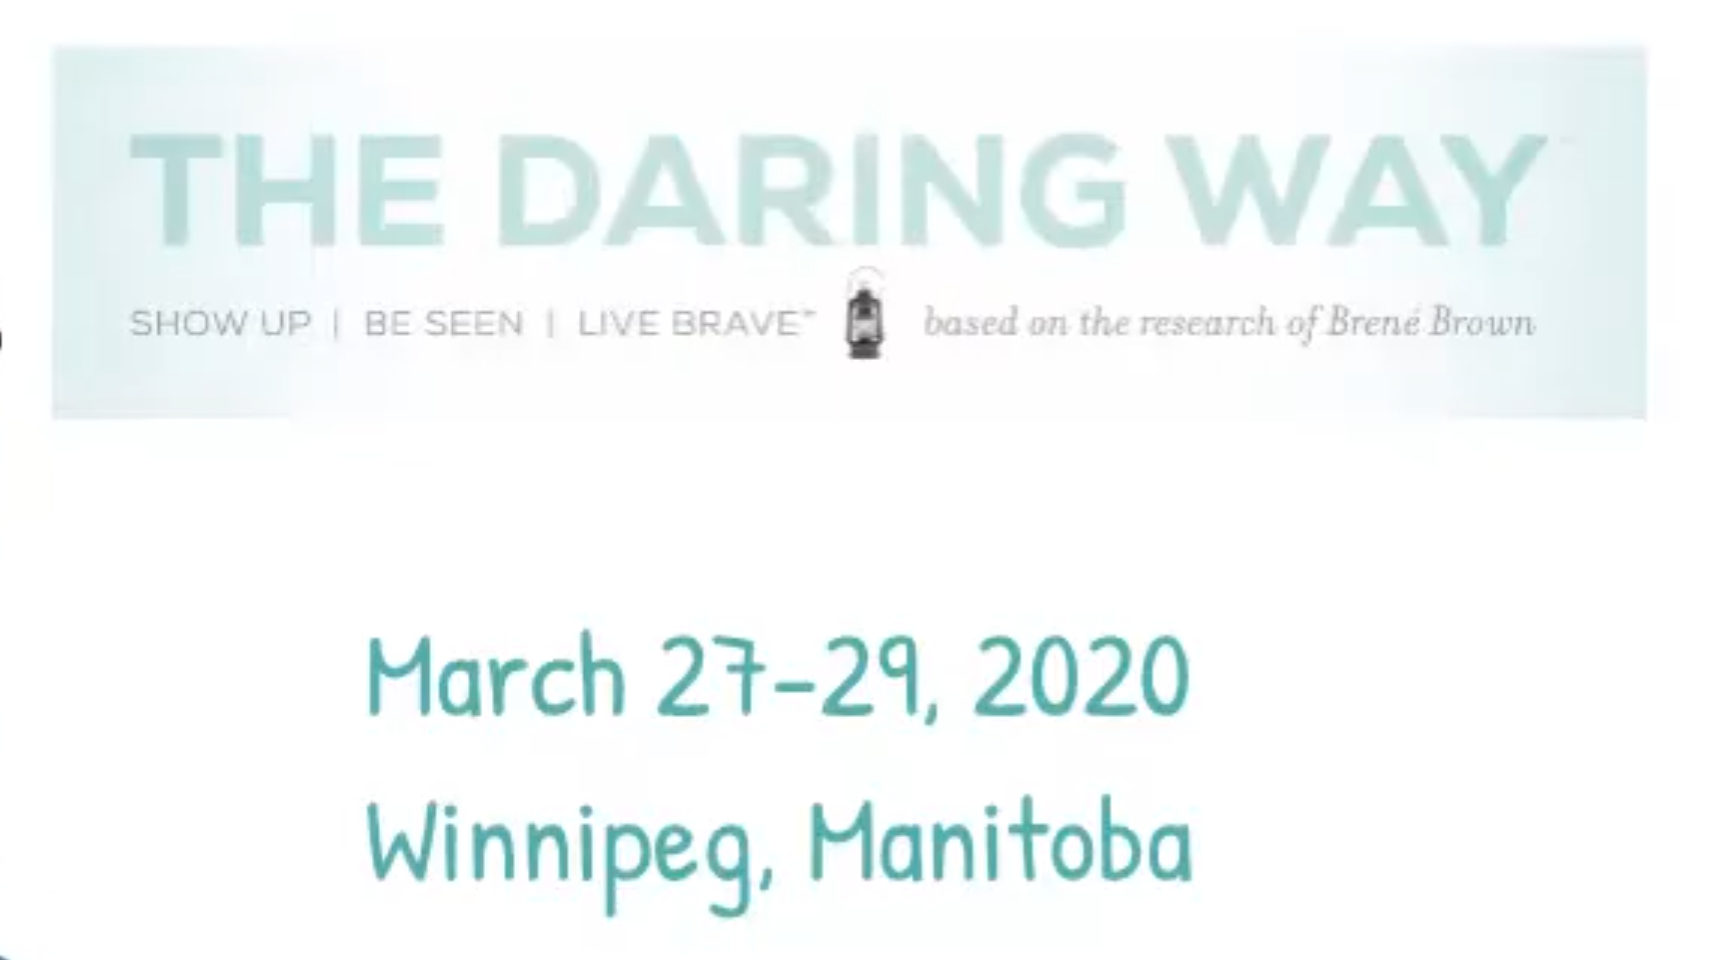 The Daring Way, developed out of the research of Dr. Brené Brown is being offered March 27-19, 2020